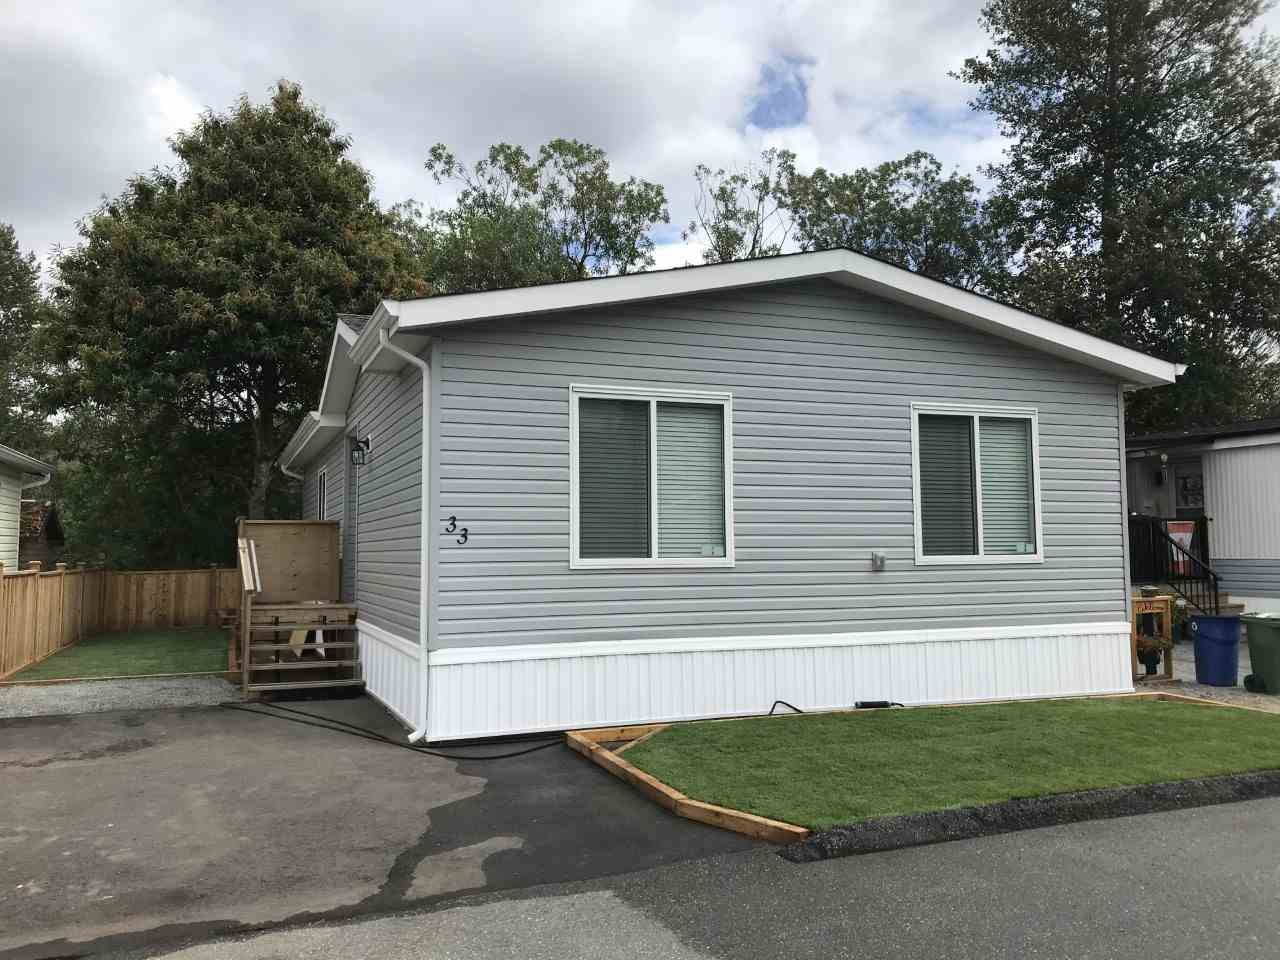 """Main Photo: 33 3300 HORN Street in Abbotsford: Central Abbotsford Manufactured Home for sale in """"Georgian Park"""" : MLS®# R2472022"""